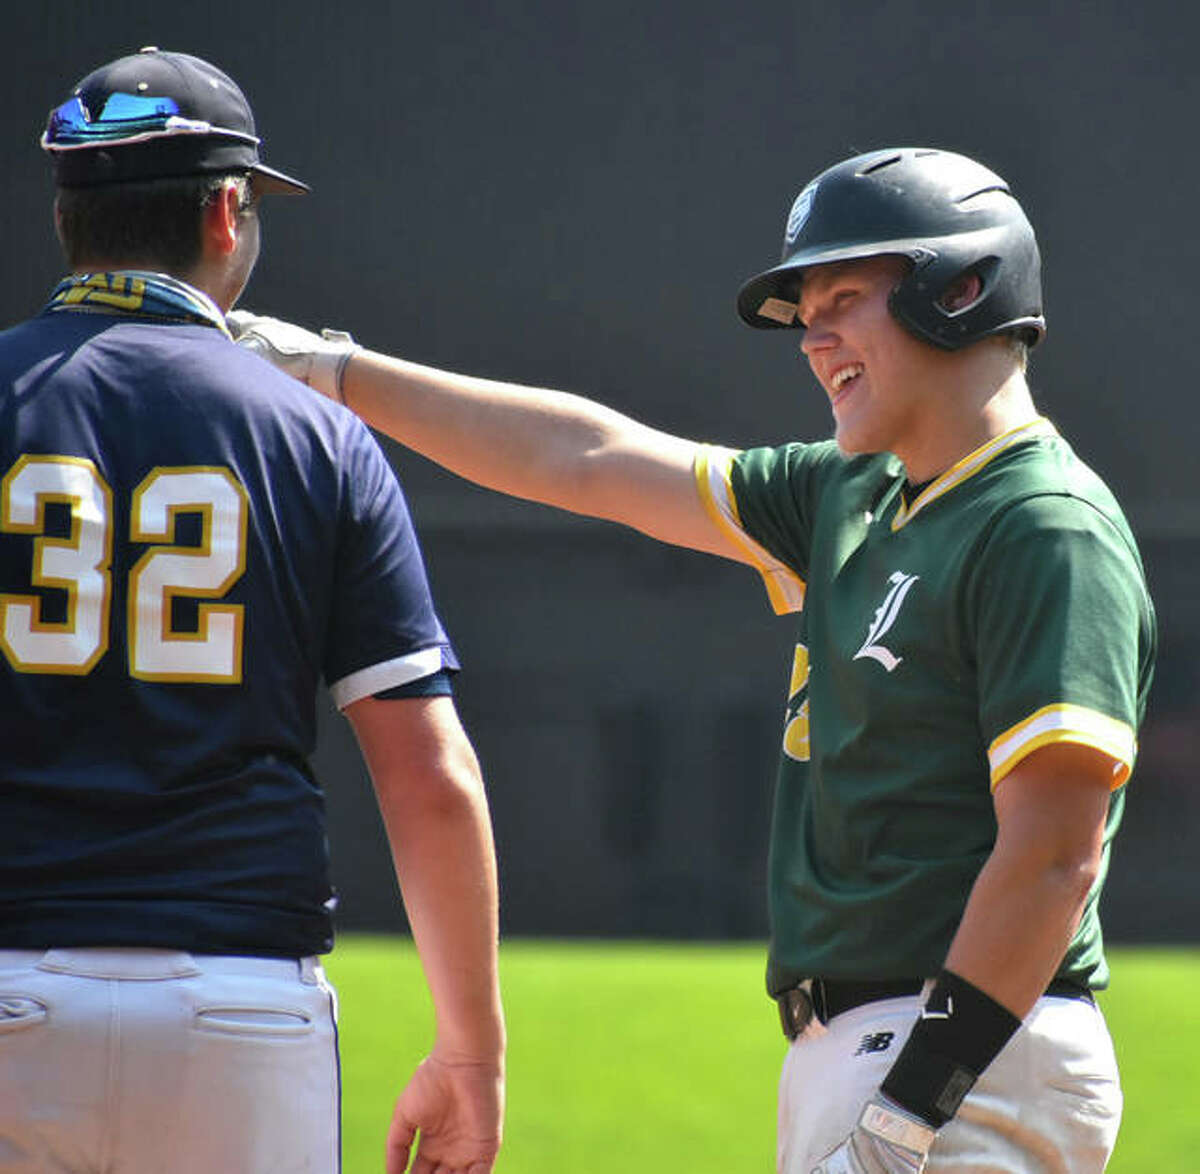 Metro-East Lutheran's Erik Broekemeier is all smiles after reaching first base on a single against Father McGivney at Busch Stadium.